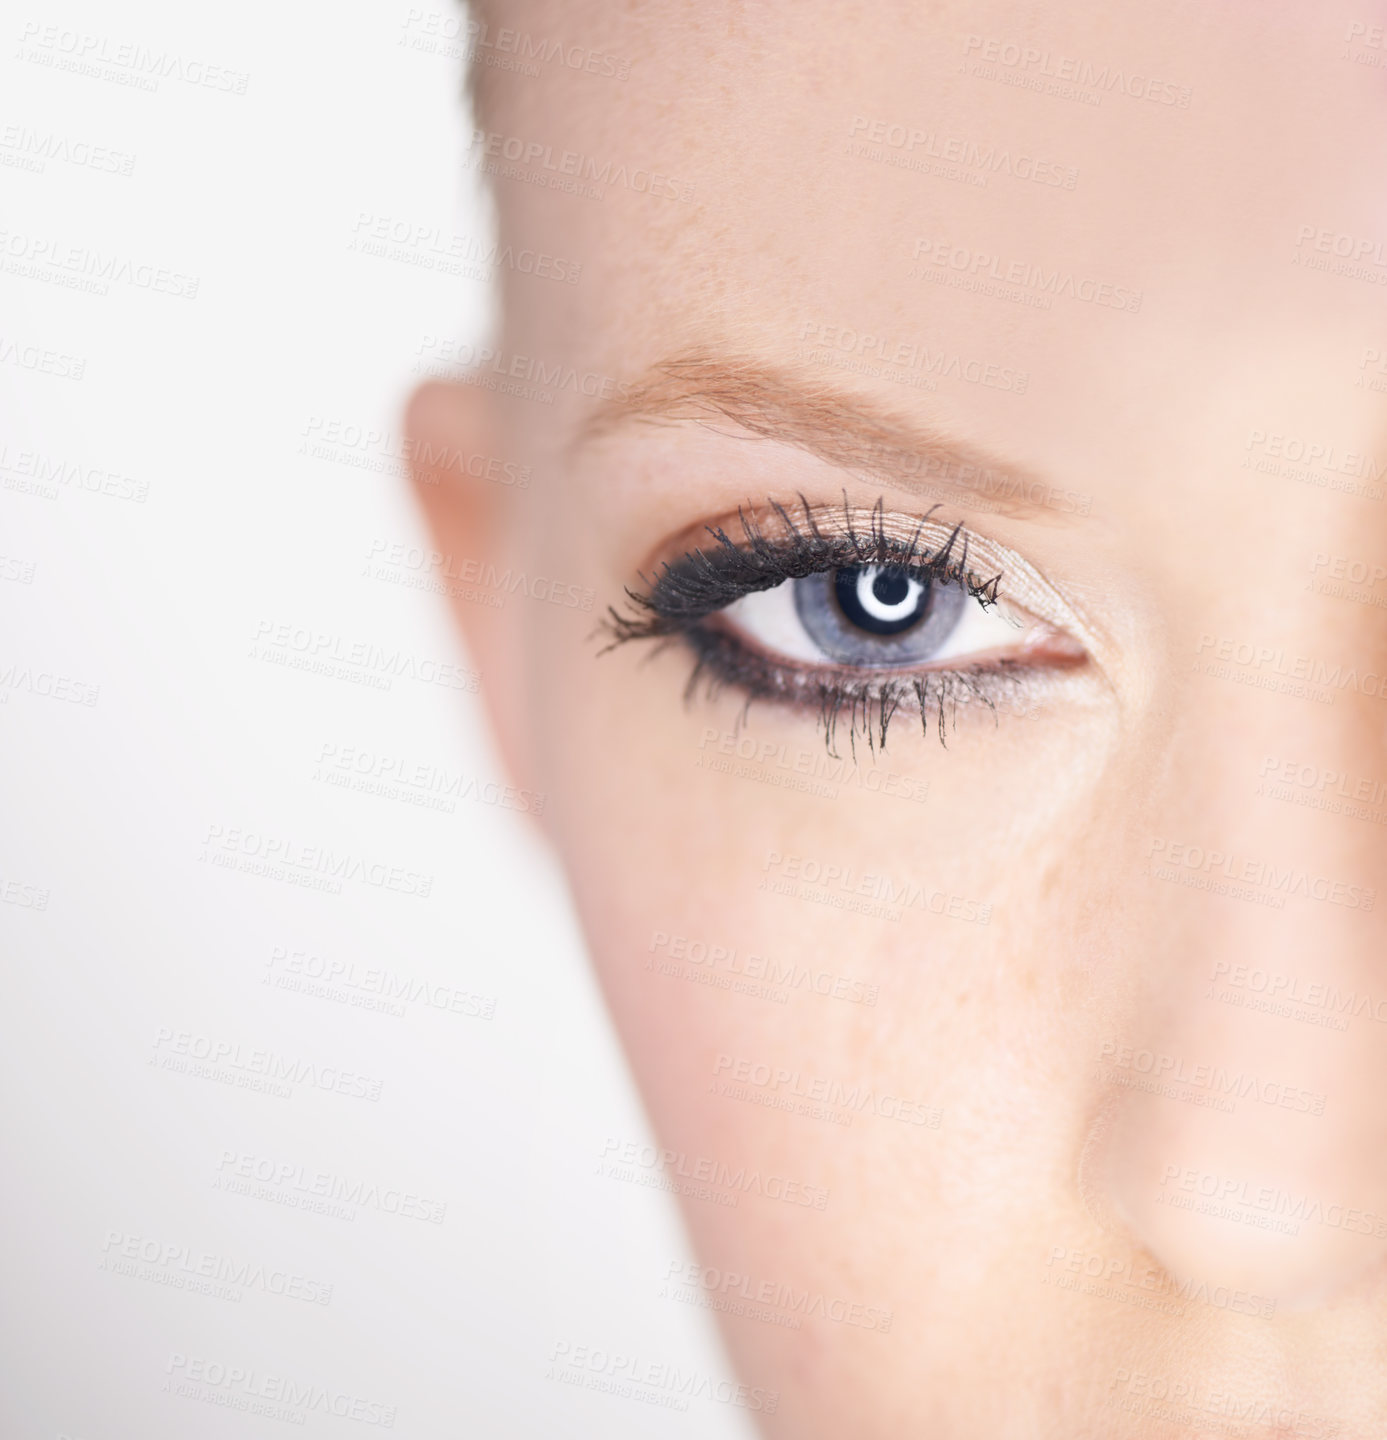 Buy stock photo Closeup of a beautiful young woman's eye with make-up applied